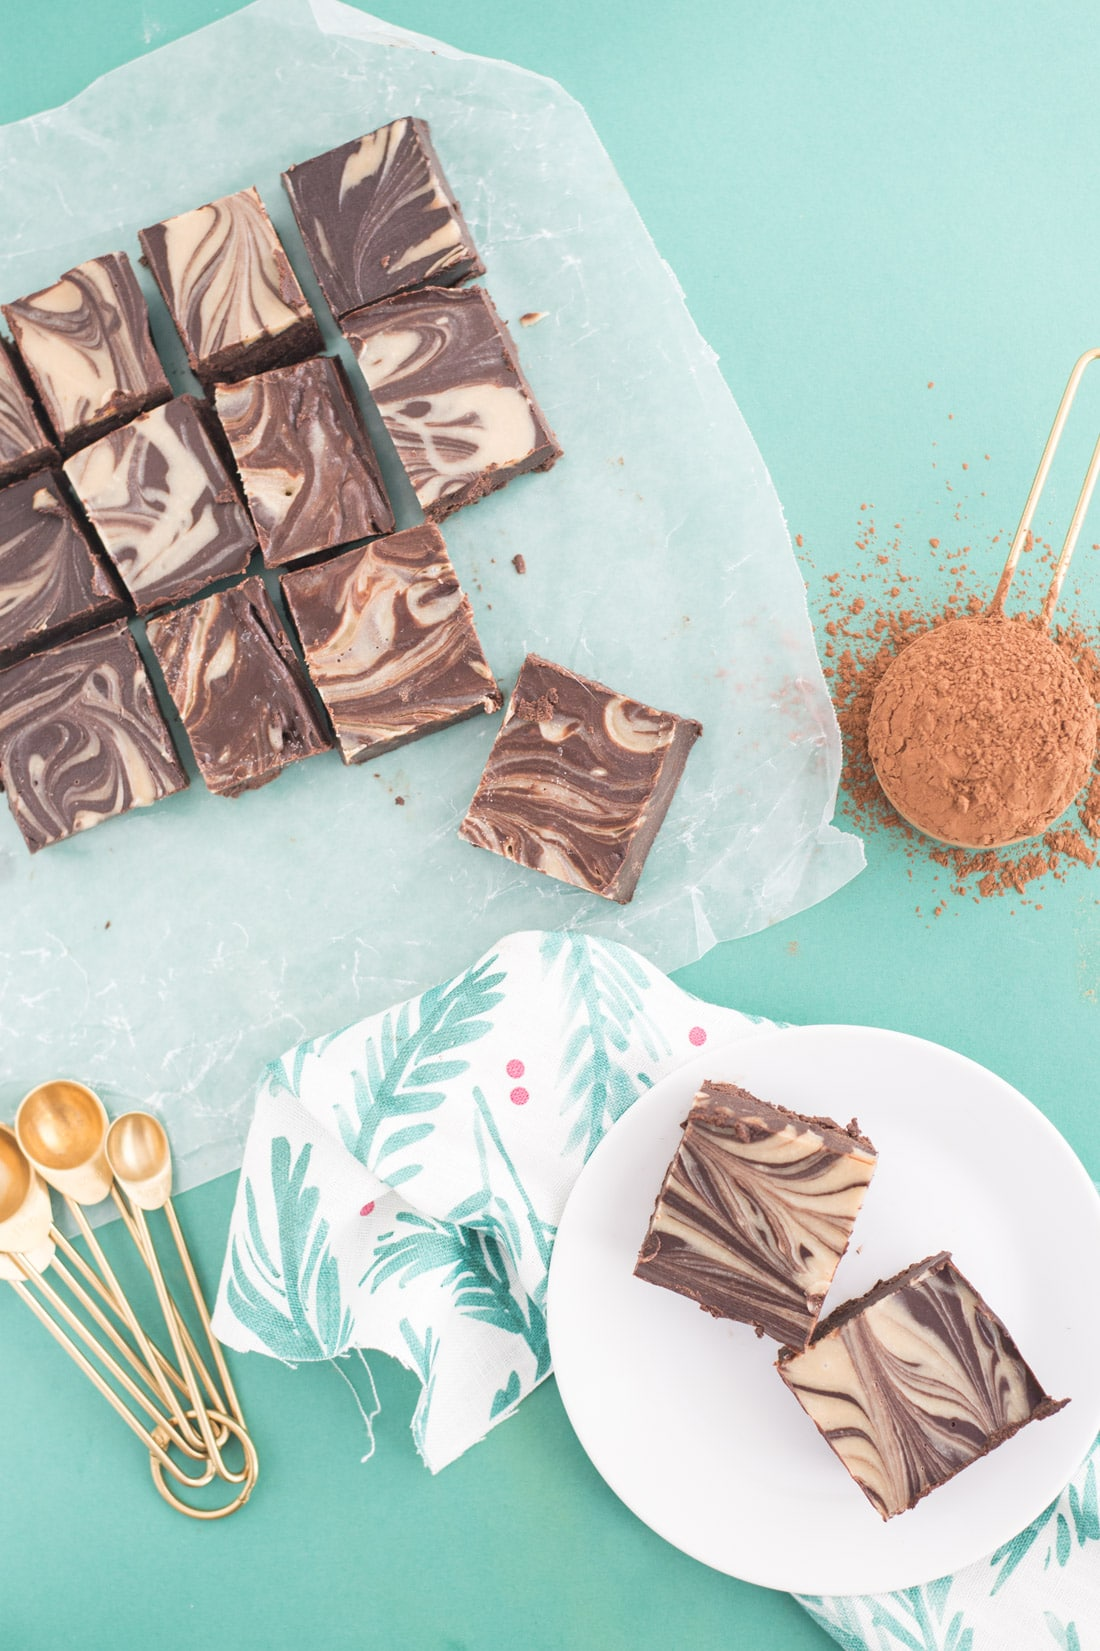 Tahini Swirl Vegan Fudge -- This fudge is so rich and decadent sans all the butter, dairy, and refined sugar. Tahini, coconut oil, maple syrup, and chocolate create this vegan fudge masterpiece. | mindfulavocado